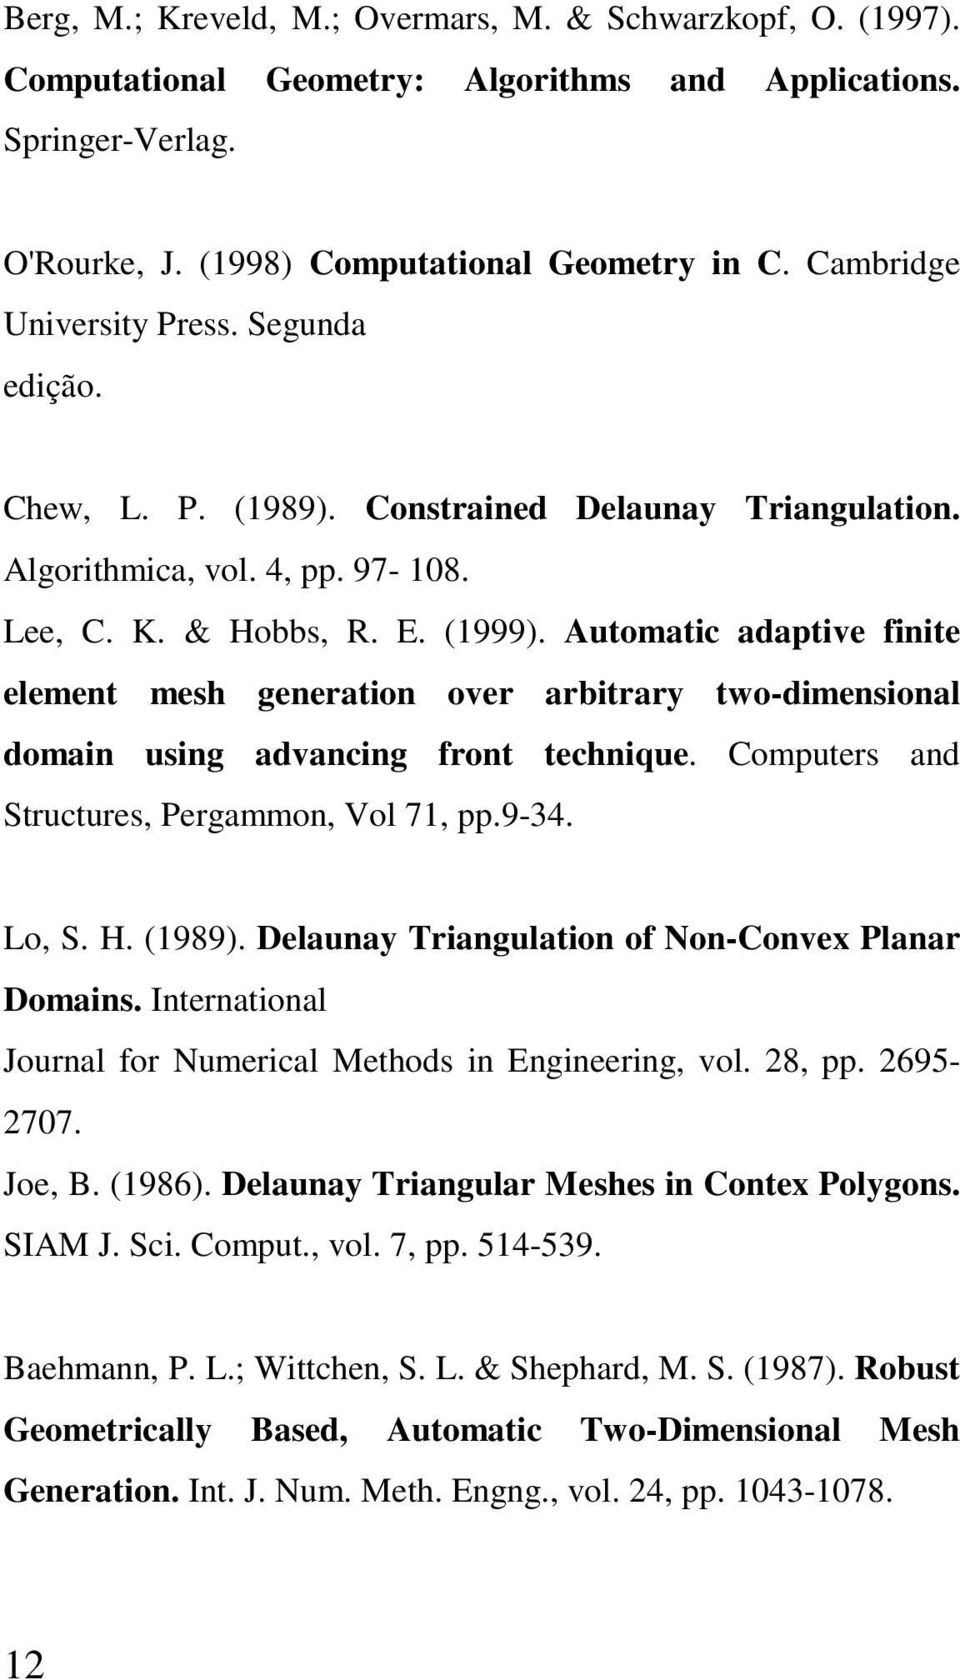 Automatic adaptive finite element mesh generation over arbitrary two-dimensional domain using advancing front technique. Computers and Structures, Pergammon, Vol 71, pp.9-34. Lo, S. H. (1989).